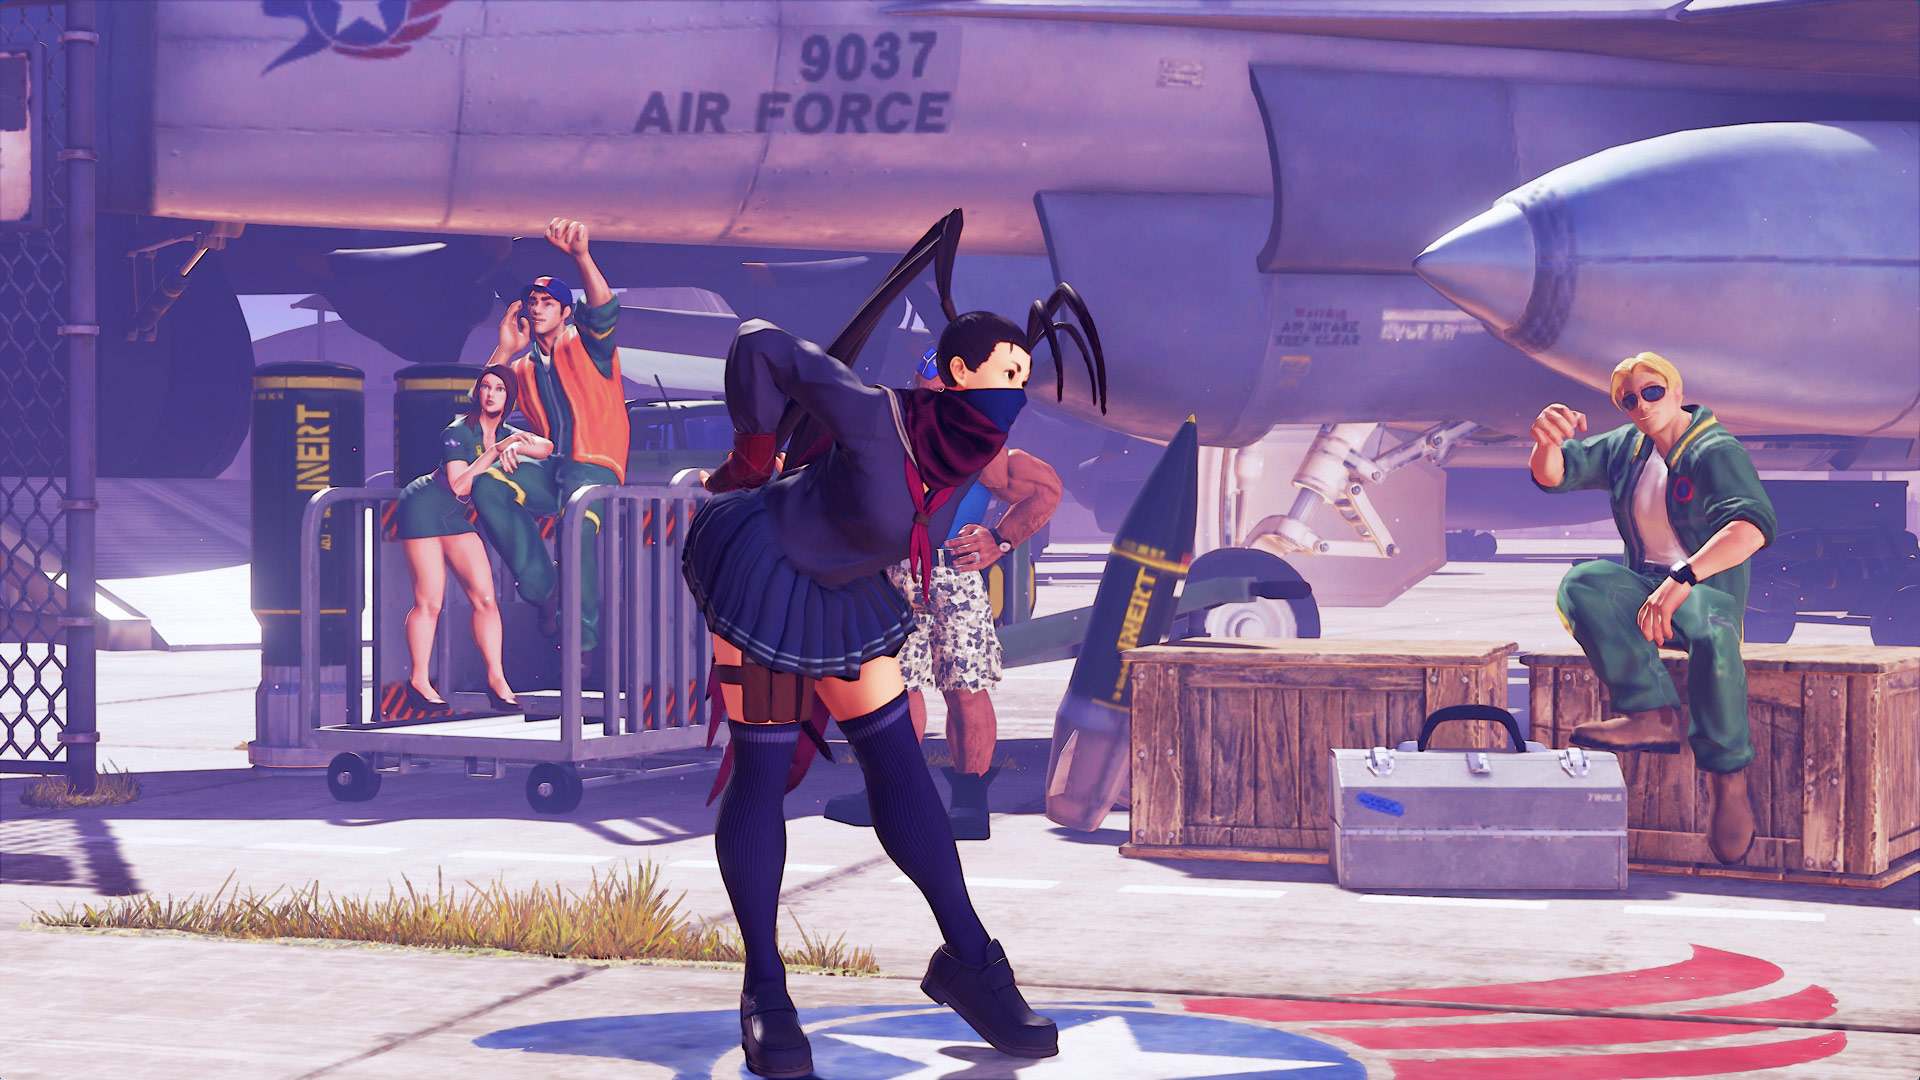 More Street Fighter 5 school costumes 4 out of 4 image gallery